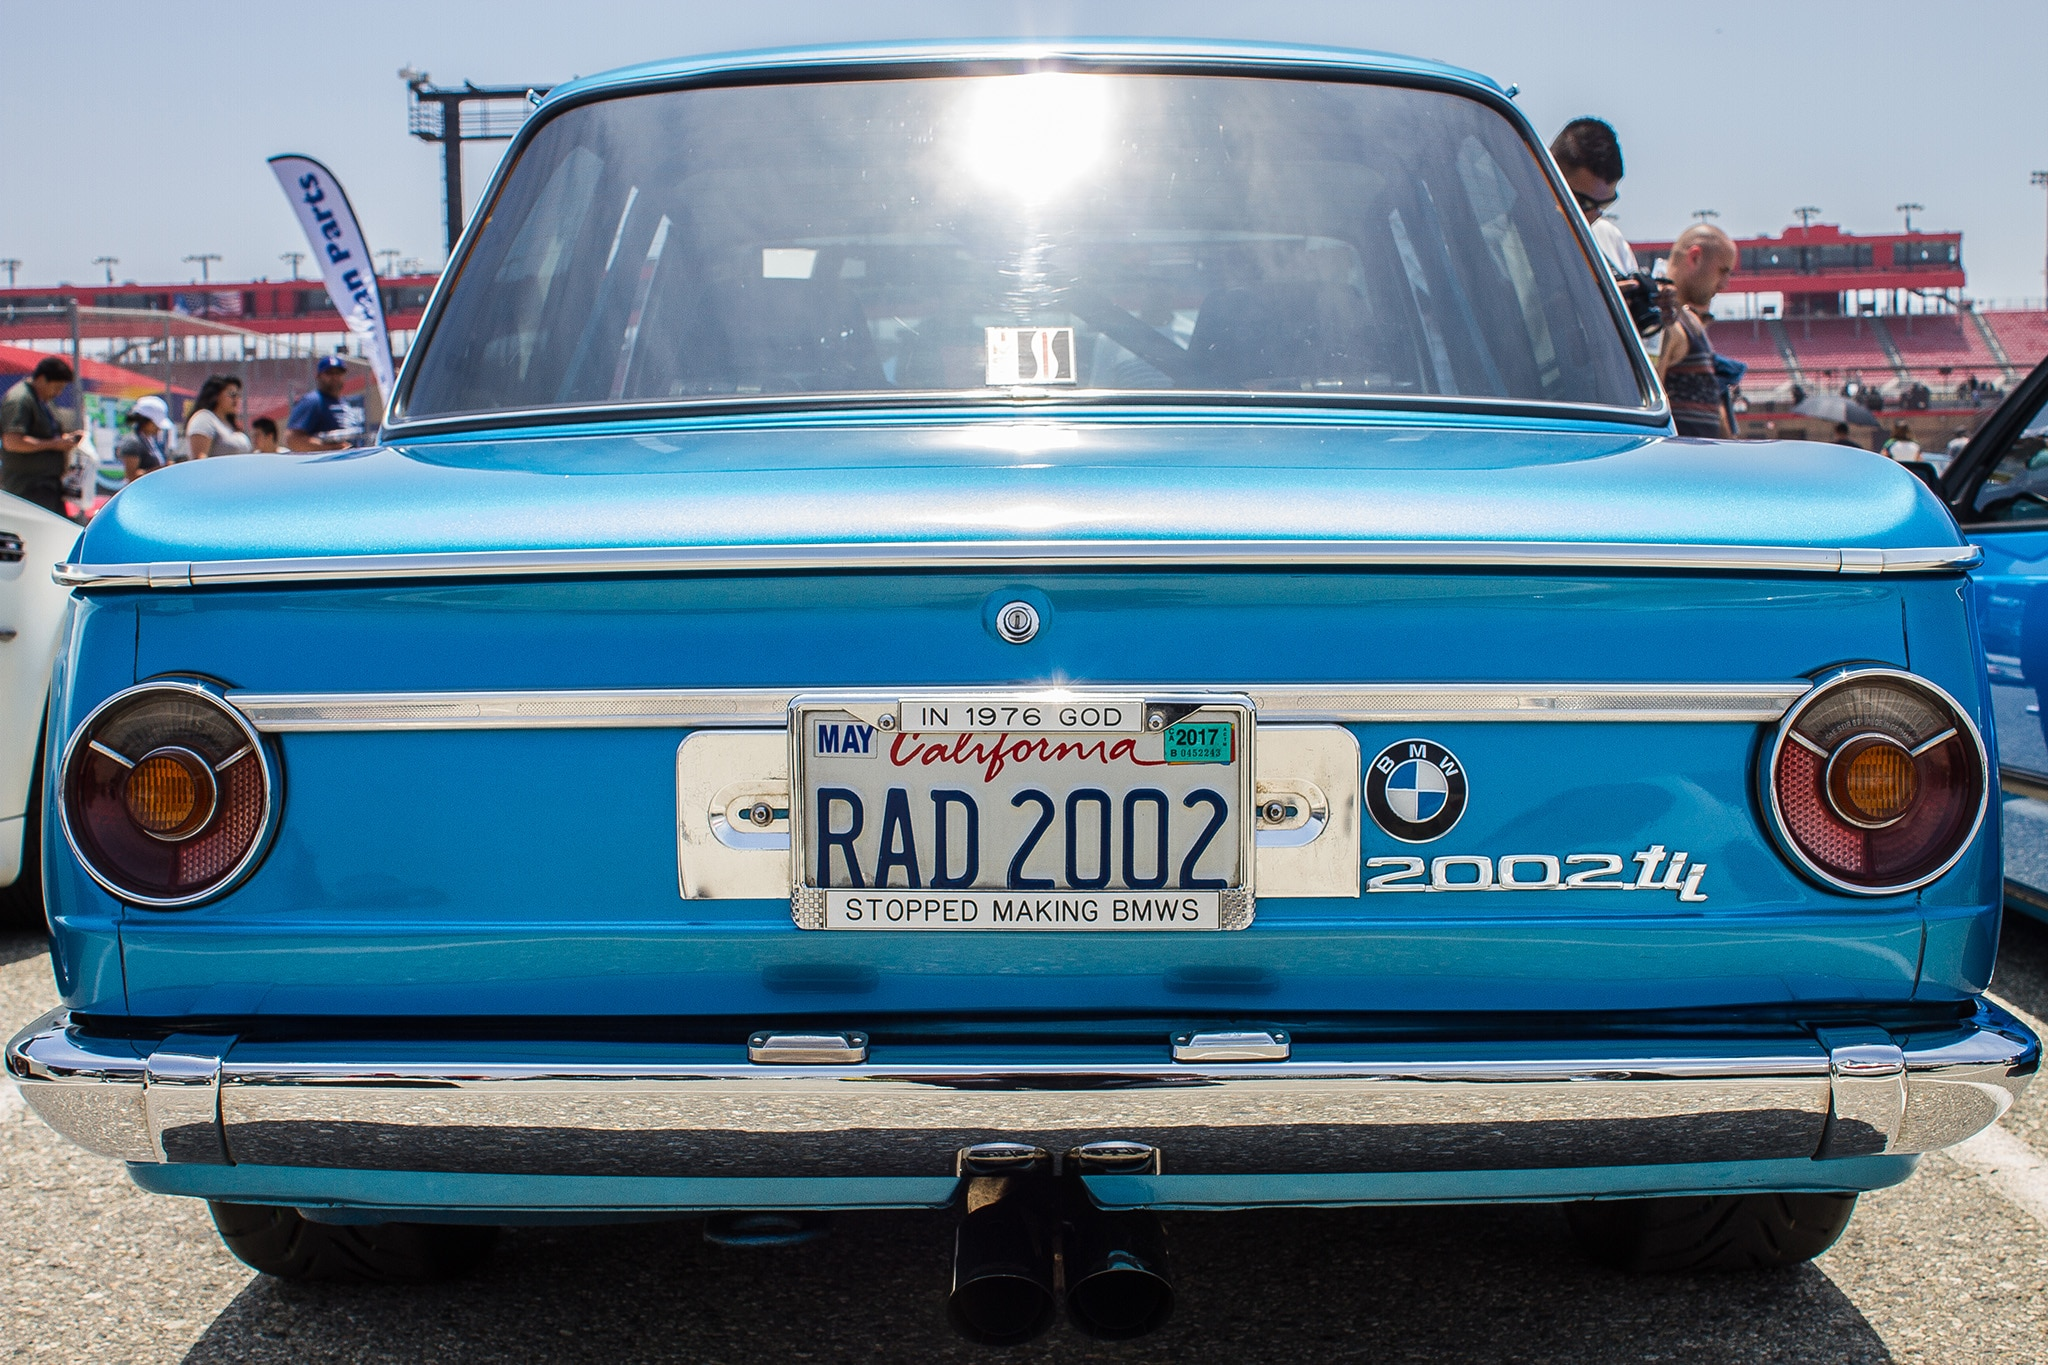 Top 4 Vintage Cars of BimmerFest West 2016 Photo & Image Gallery